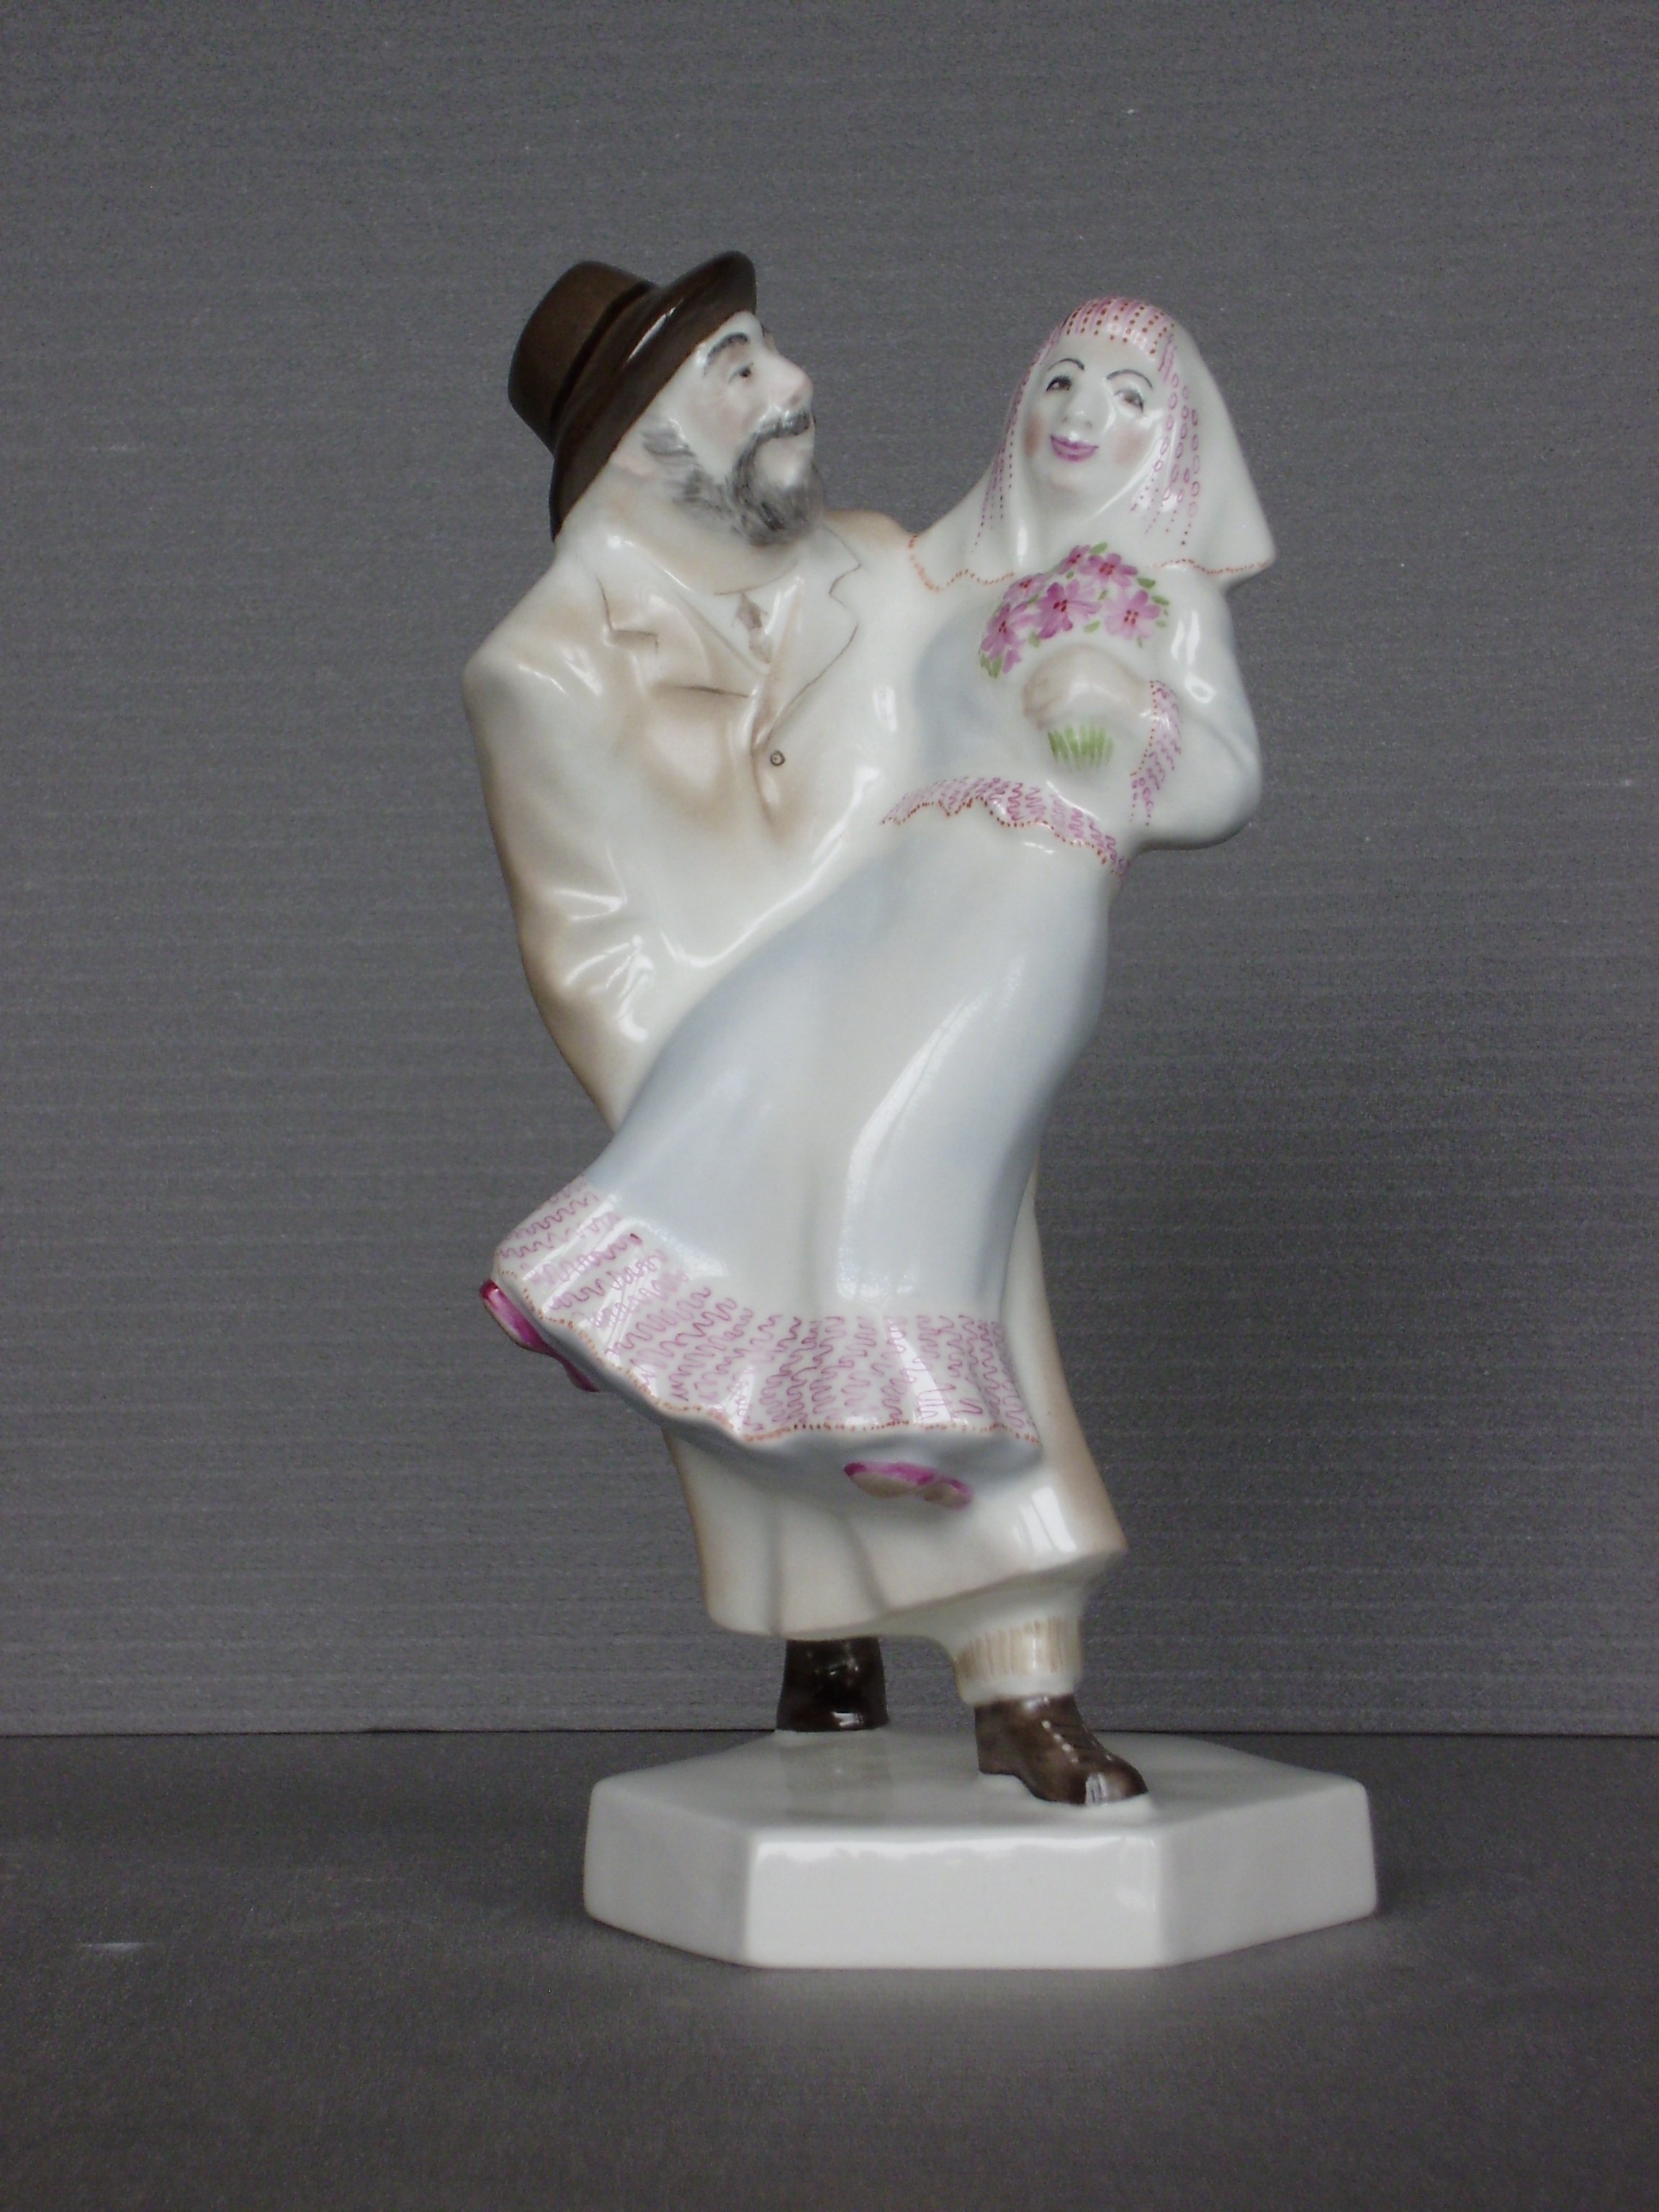 Alexander Iv Ivanov Artwork jewish wedding, 2017 Ceramic Sculpture, Judaic